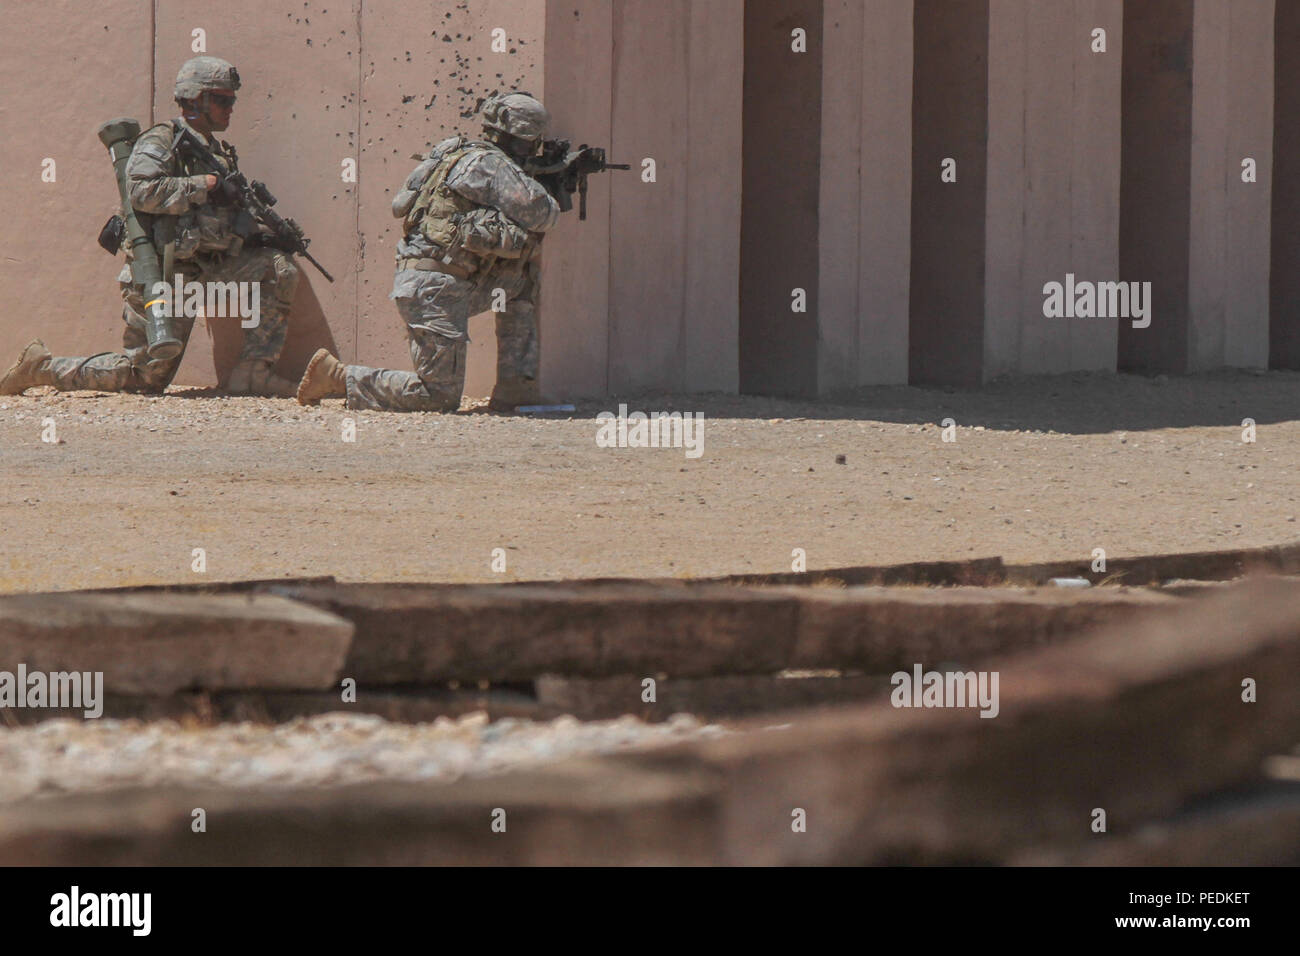 Paratroopers assigned to the 1st Battalion, 325th Airborne Infantry Regiment, 2nd Brigade Combat Team, 82nd Airborne Division, assault an enemy-held urban environment at the National Training Center at Fort Irwin, Calif., Aug. 11, 2015. The 1st Battalion, 325th AIR paratroopers completed several blank and live-fire iterations during the day and at night, enhancing their capability to incorporate myriad echelons of fire and unique weapons as well as sharpening proficiency at battle drills in the austere, arid environment of the Mojave Desert. The 1st Battalion, 325th AIR and other elements of t - Stock Image